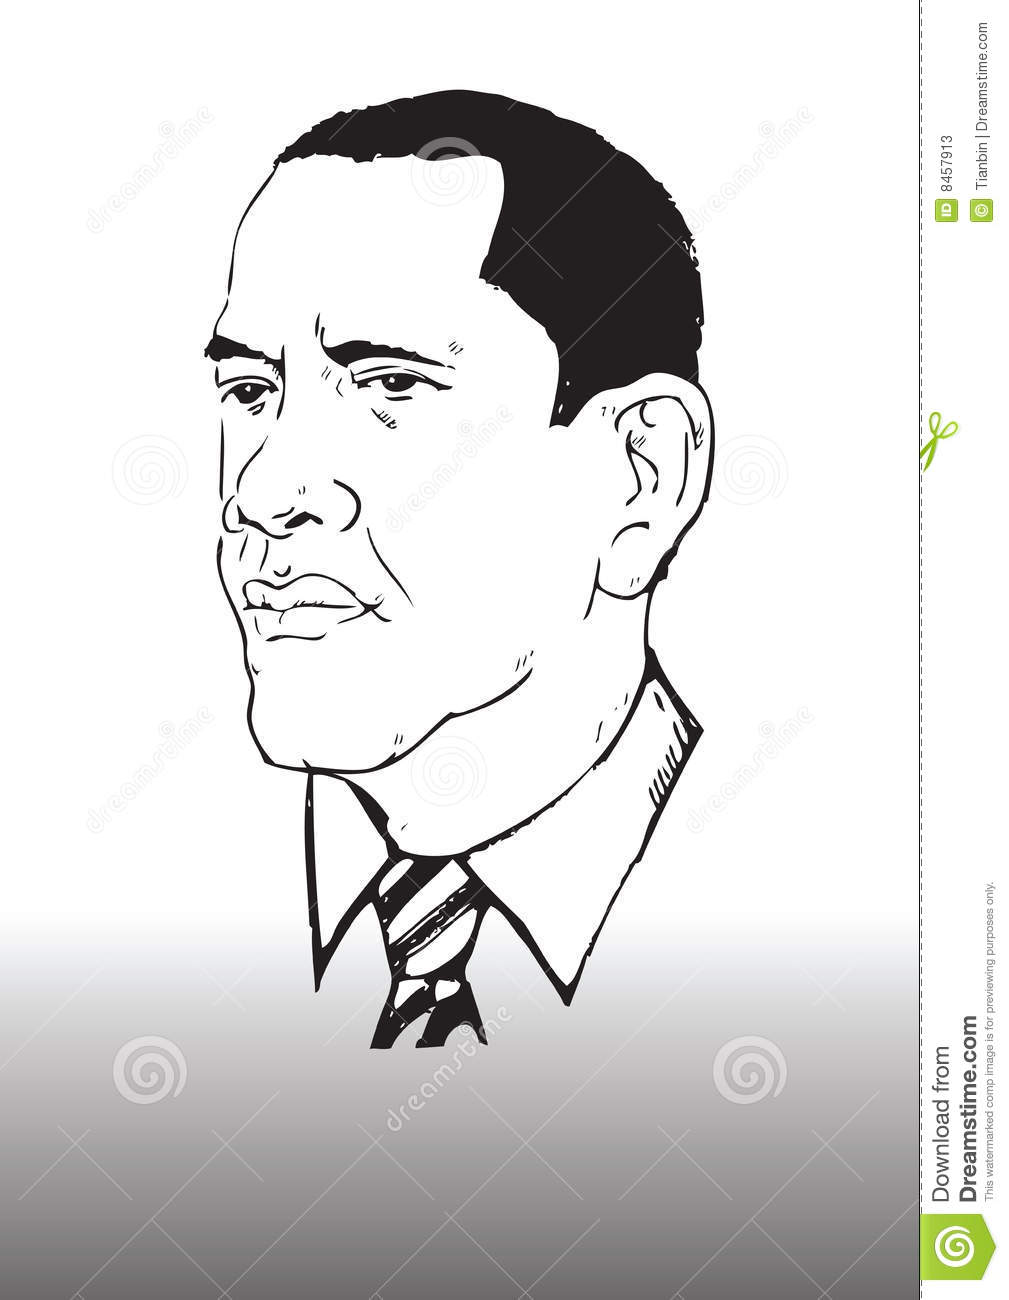 how to draw obama caricatures